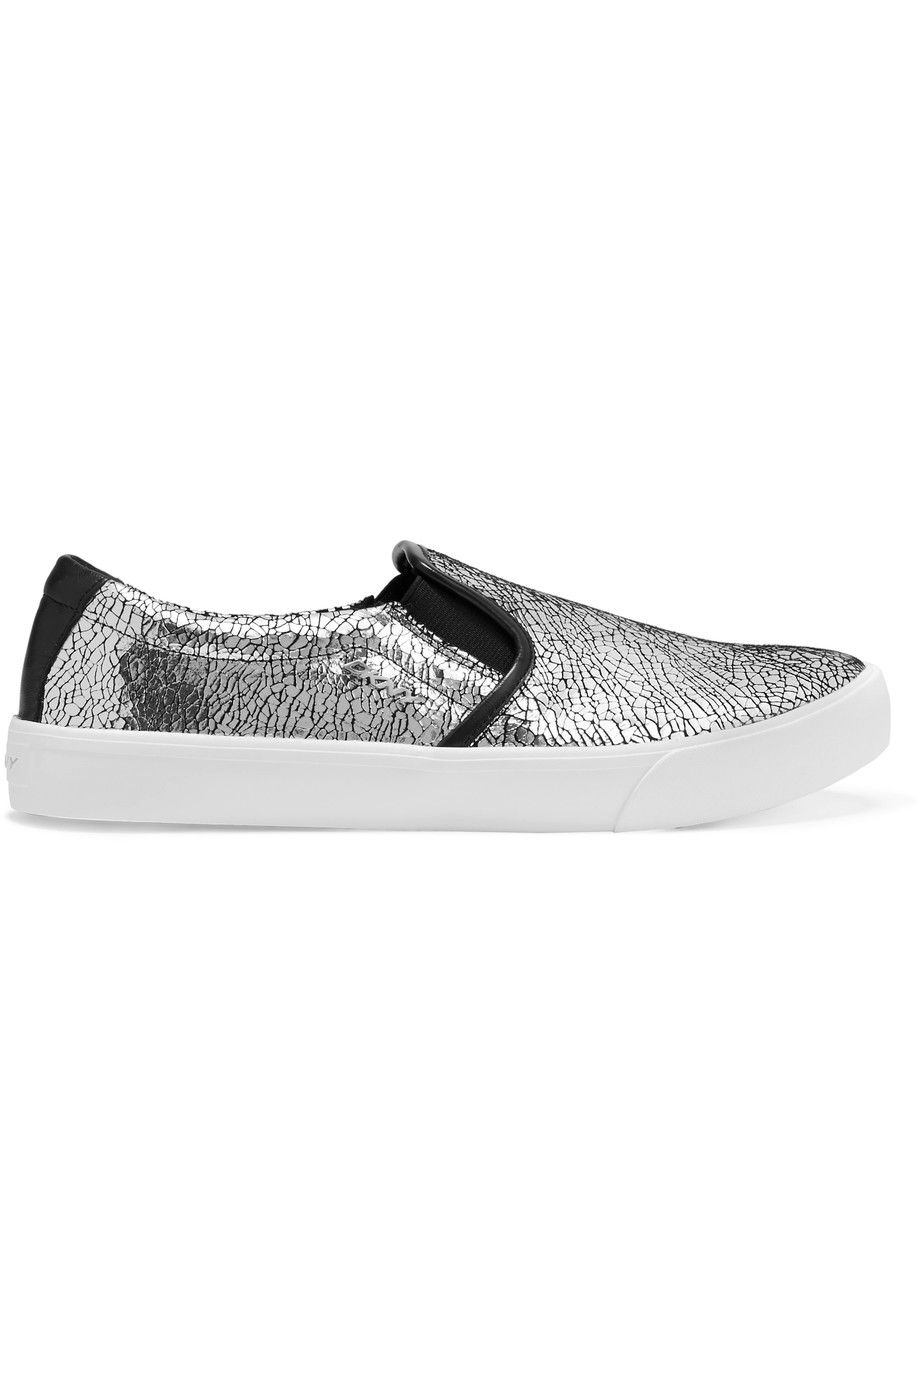 DKNY Cracked metallic leather slip-on sneakers.  dkny  shoes  sneakers 144ab221335